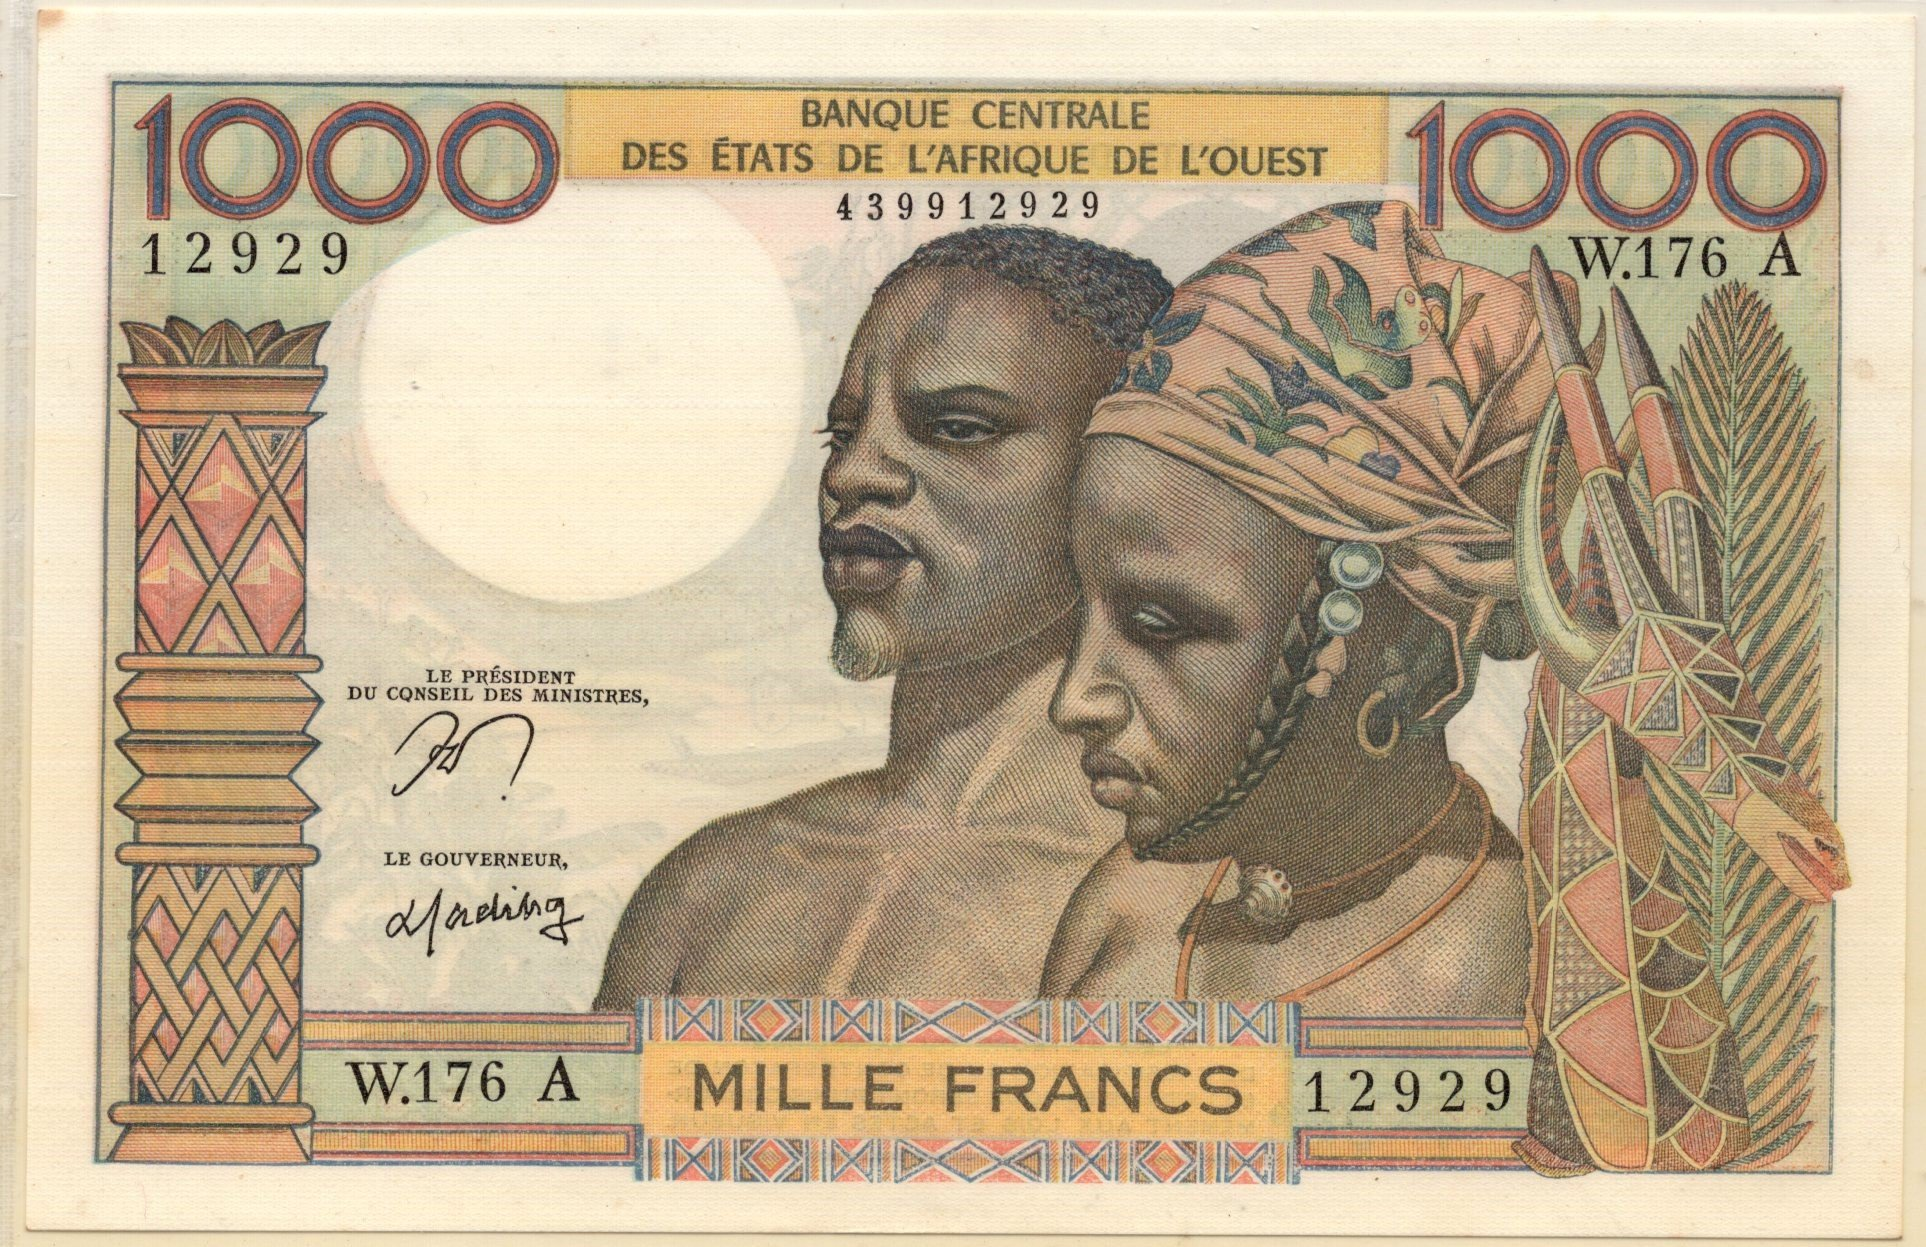 West African States 1000 francs banknote